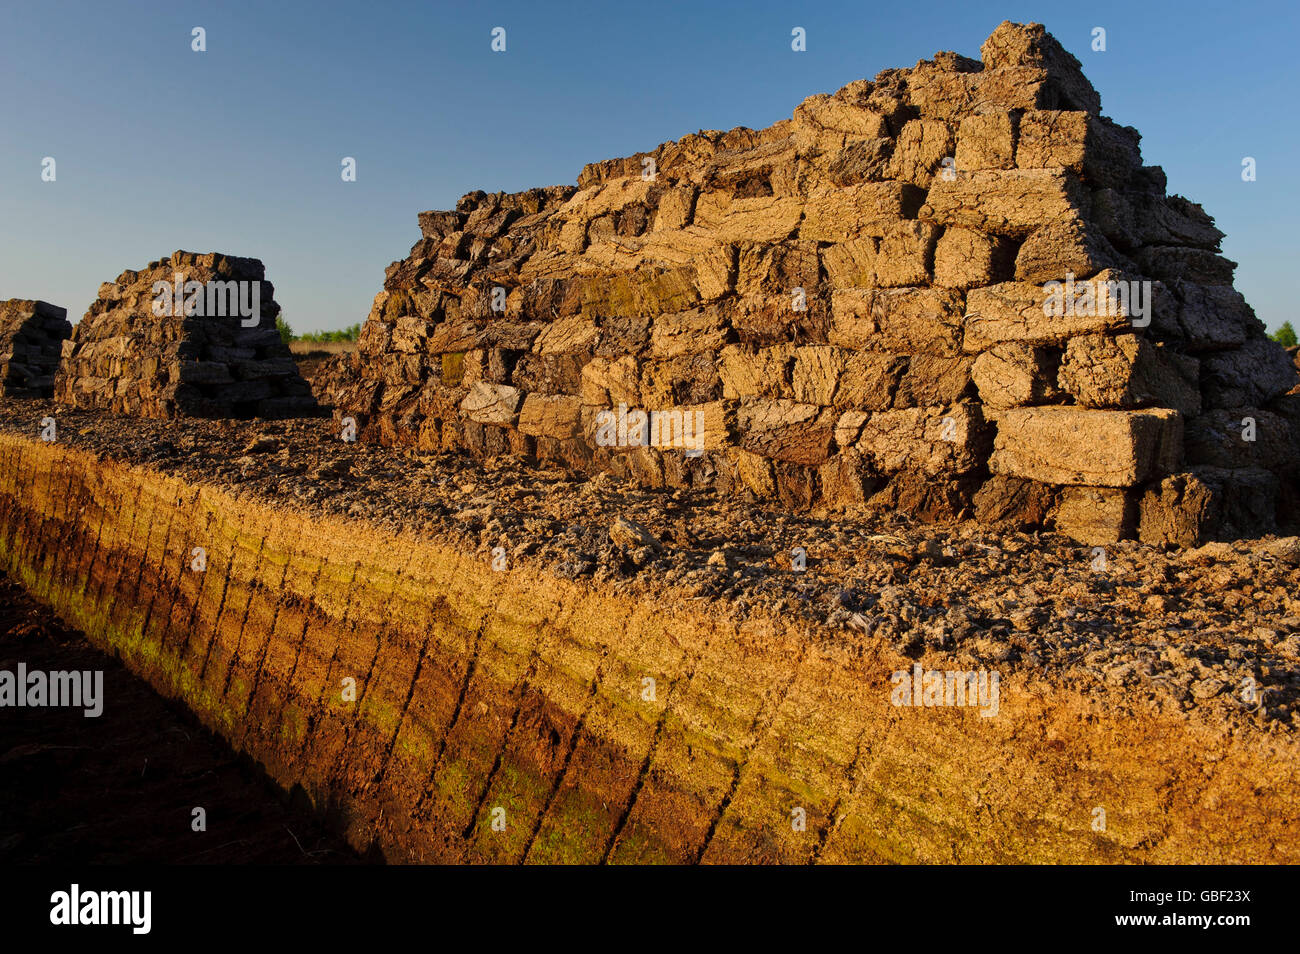 Sods of peat, Goldenstedter Moor, Diepholzer Moorniederung, Lower Saxony, Germany - Stock Image